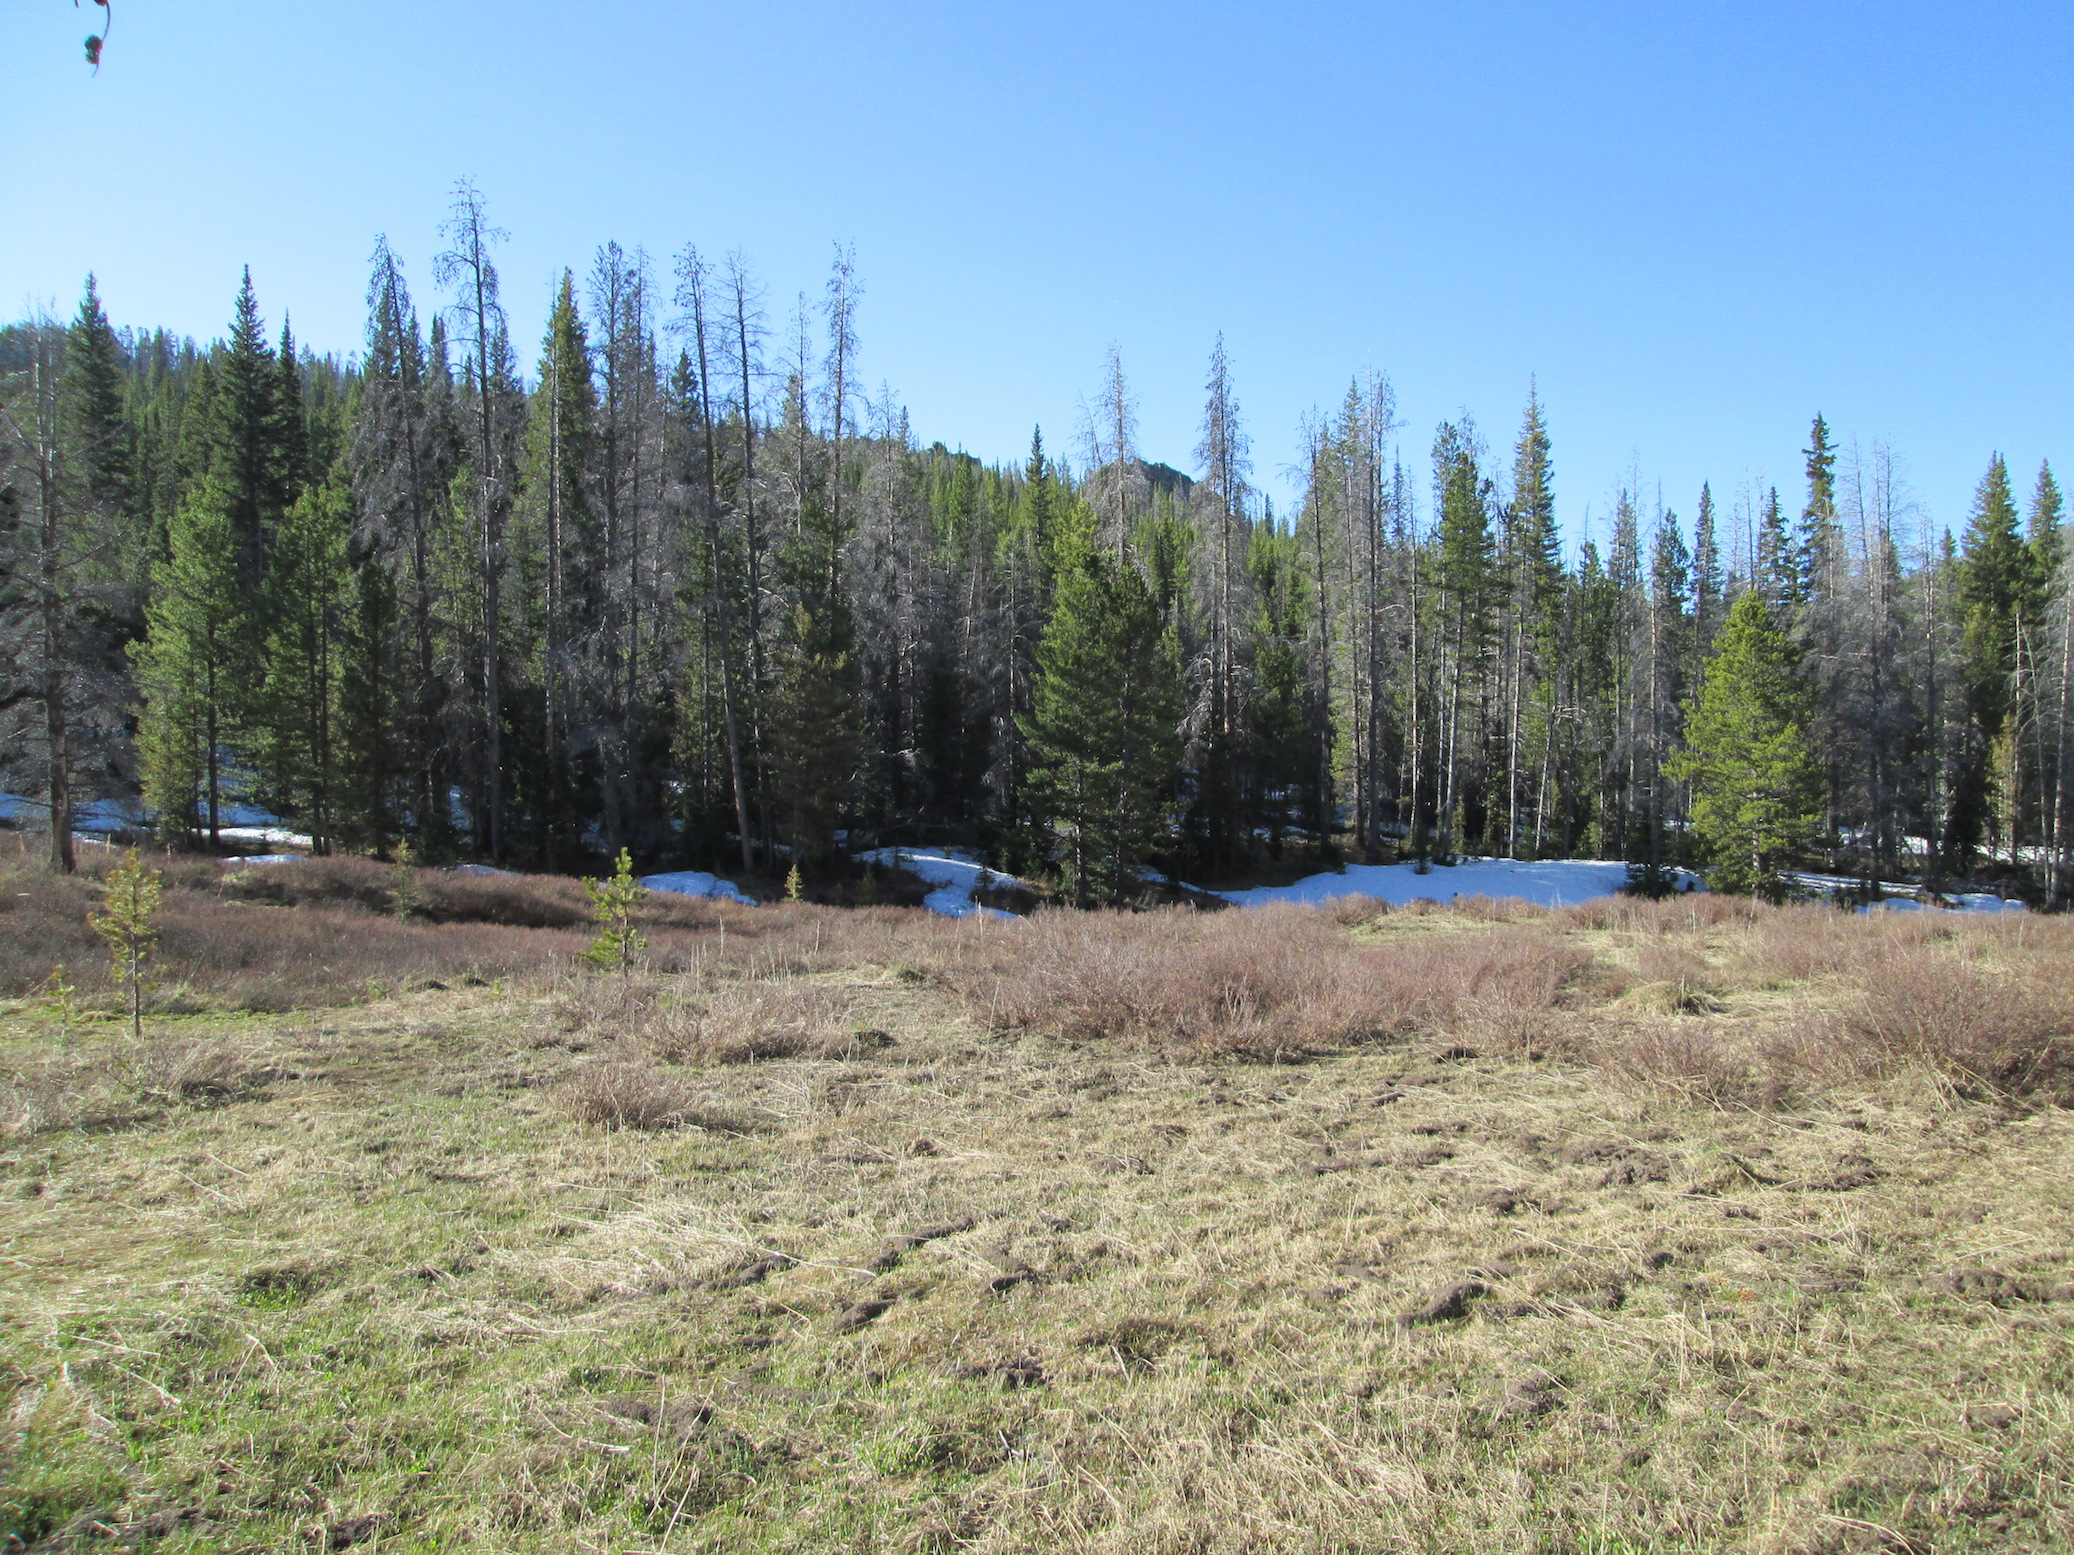 Willow Creek Pass CODOS sample area. Besides north facing, heavily treed areas, snowcover has mostly retreated to higher elevations.